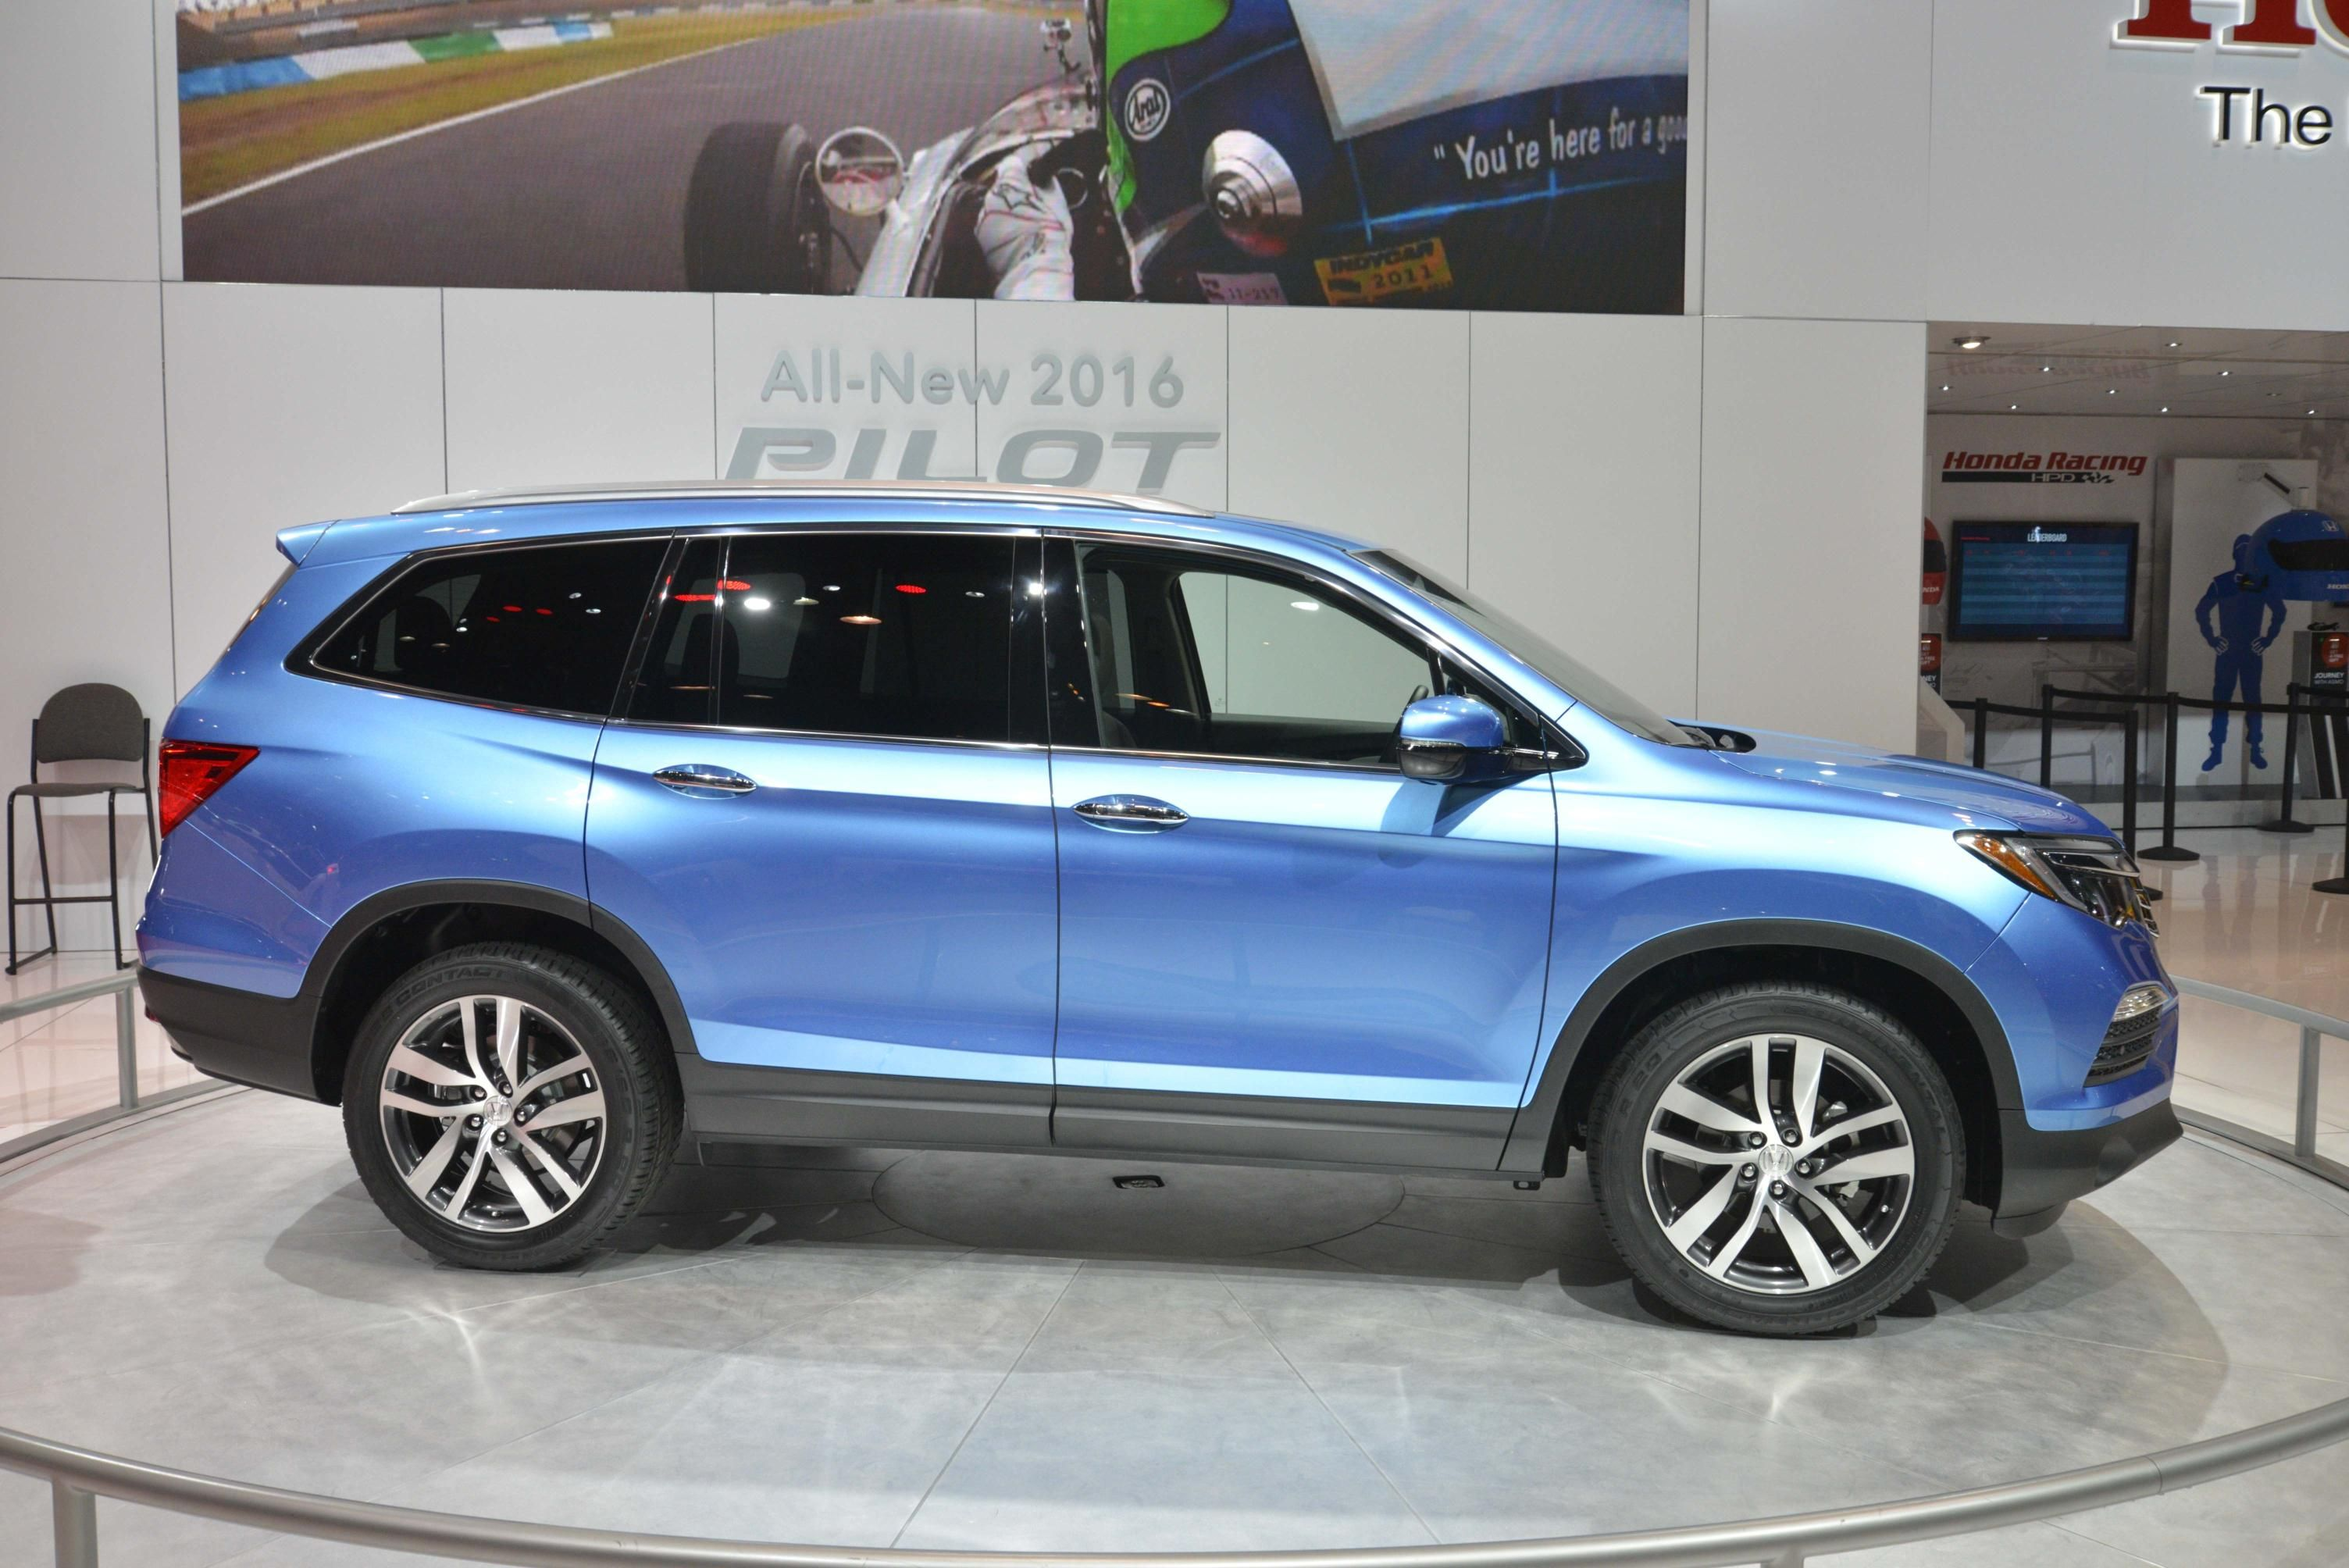 2016 honda pilot release date and engine http www autocarkr com 2016 honda pilot release date and engine cars photos pinterest engine